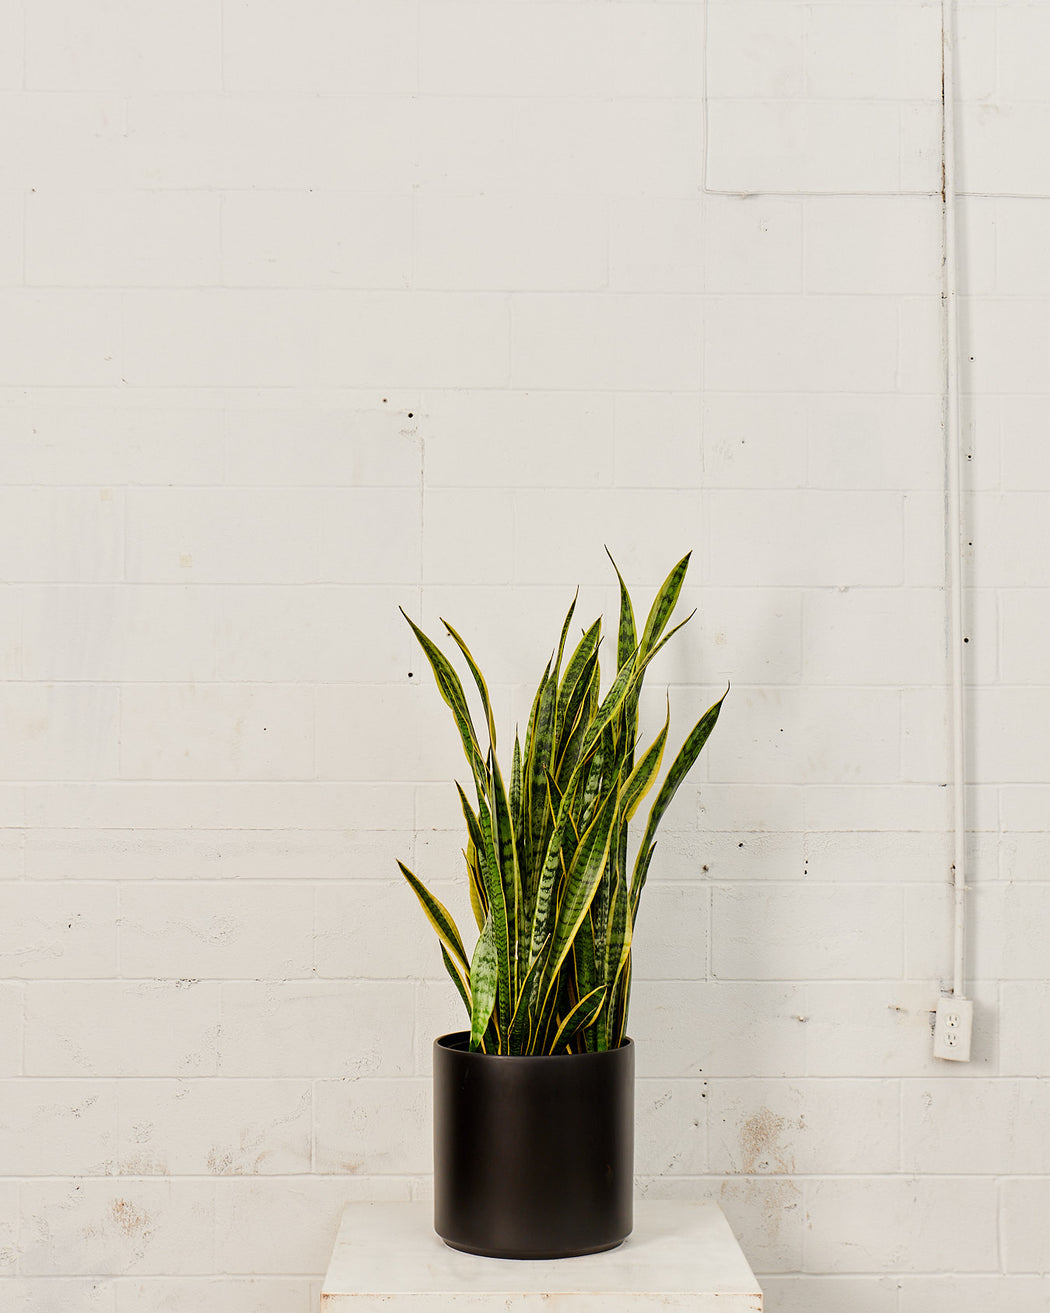 SNAKE PLANT (SANSEVIERIA 'LAURENTII') 14 Inch. Grower Pot